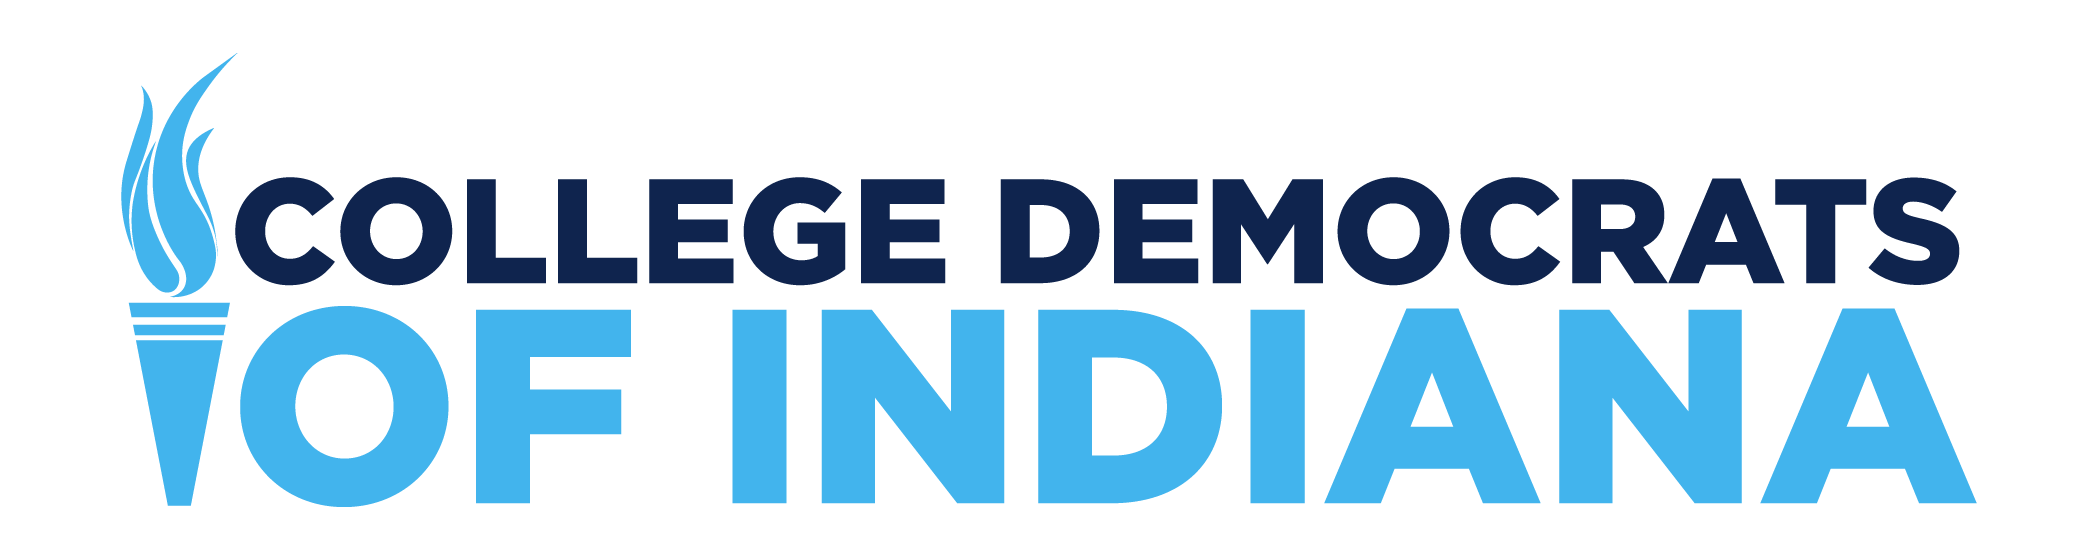 College Democrats of Indiana